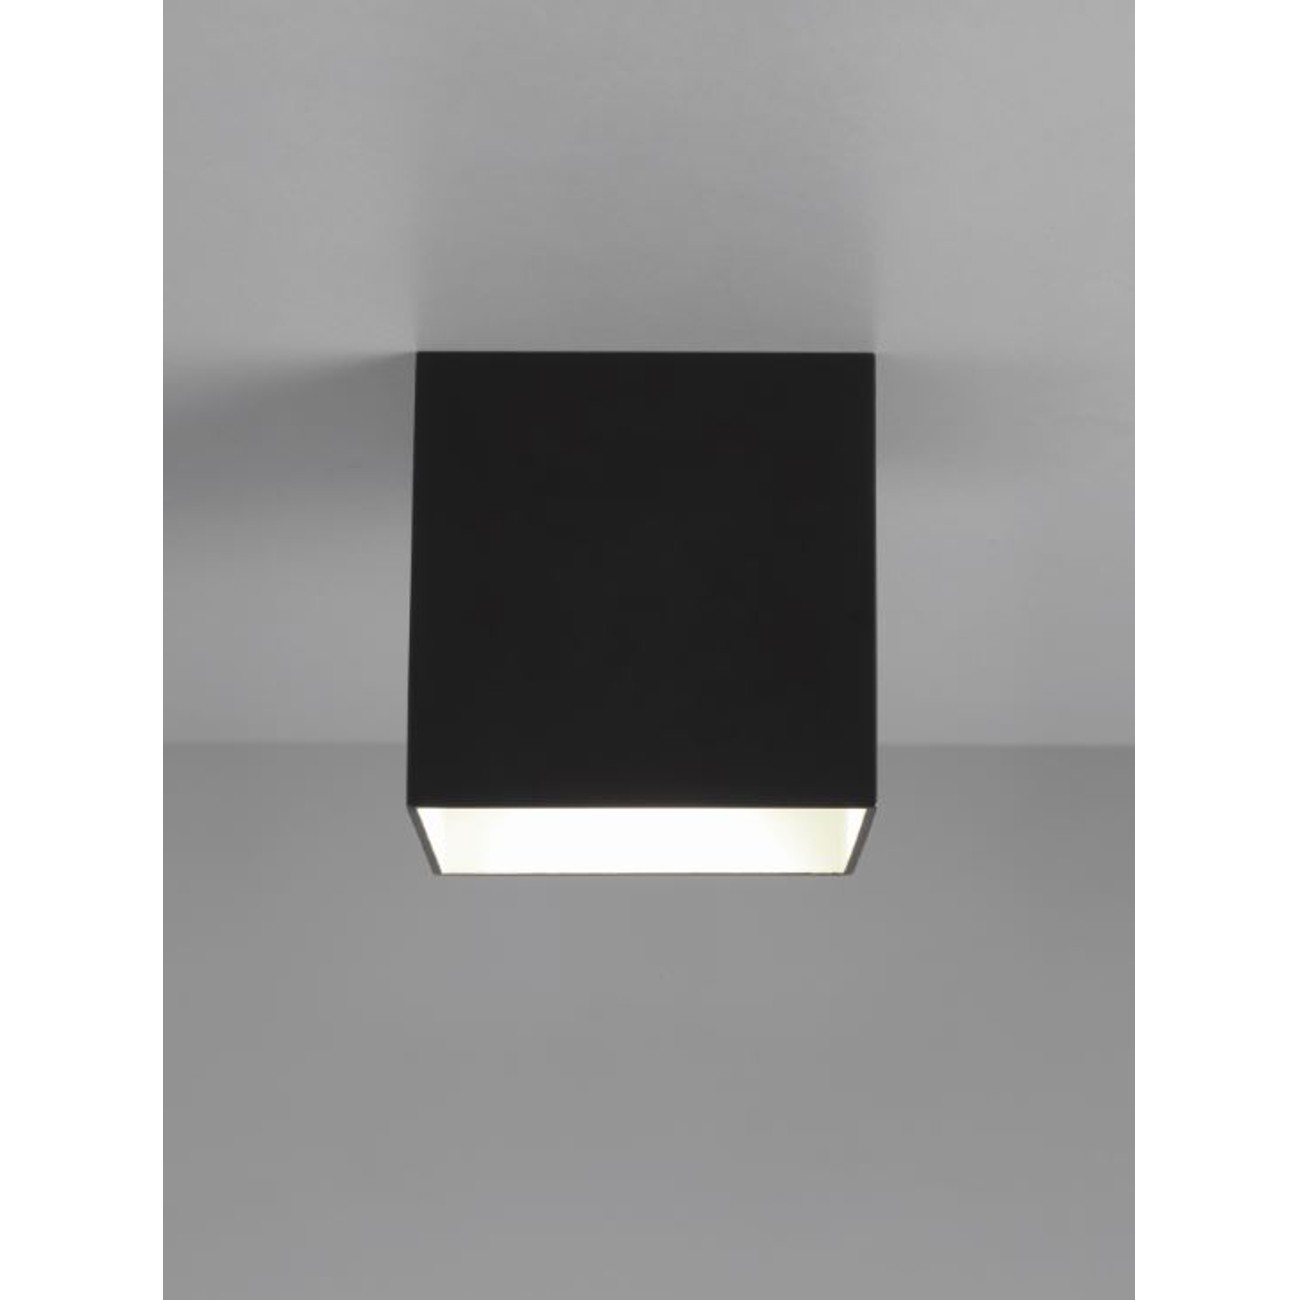 led deckenleuchte in wei und schwarz design w rfel osca led square. Black Bedroom Furniture Sets. Home Design Ideas